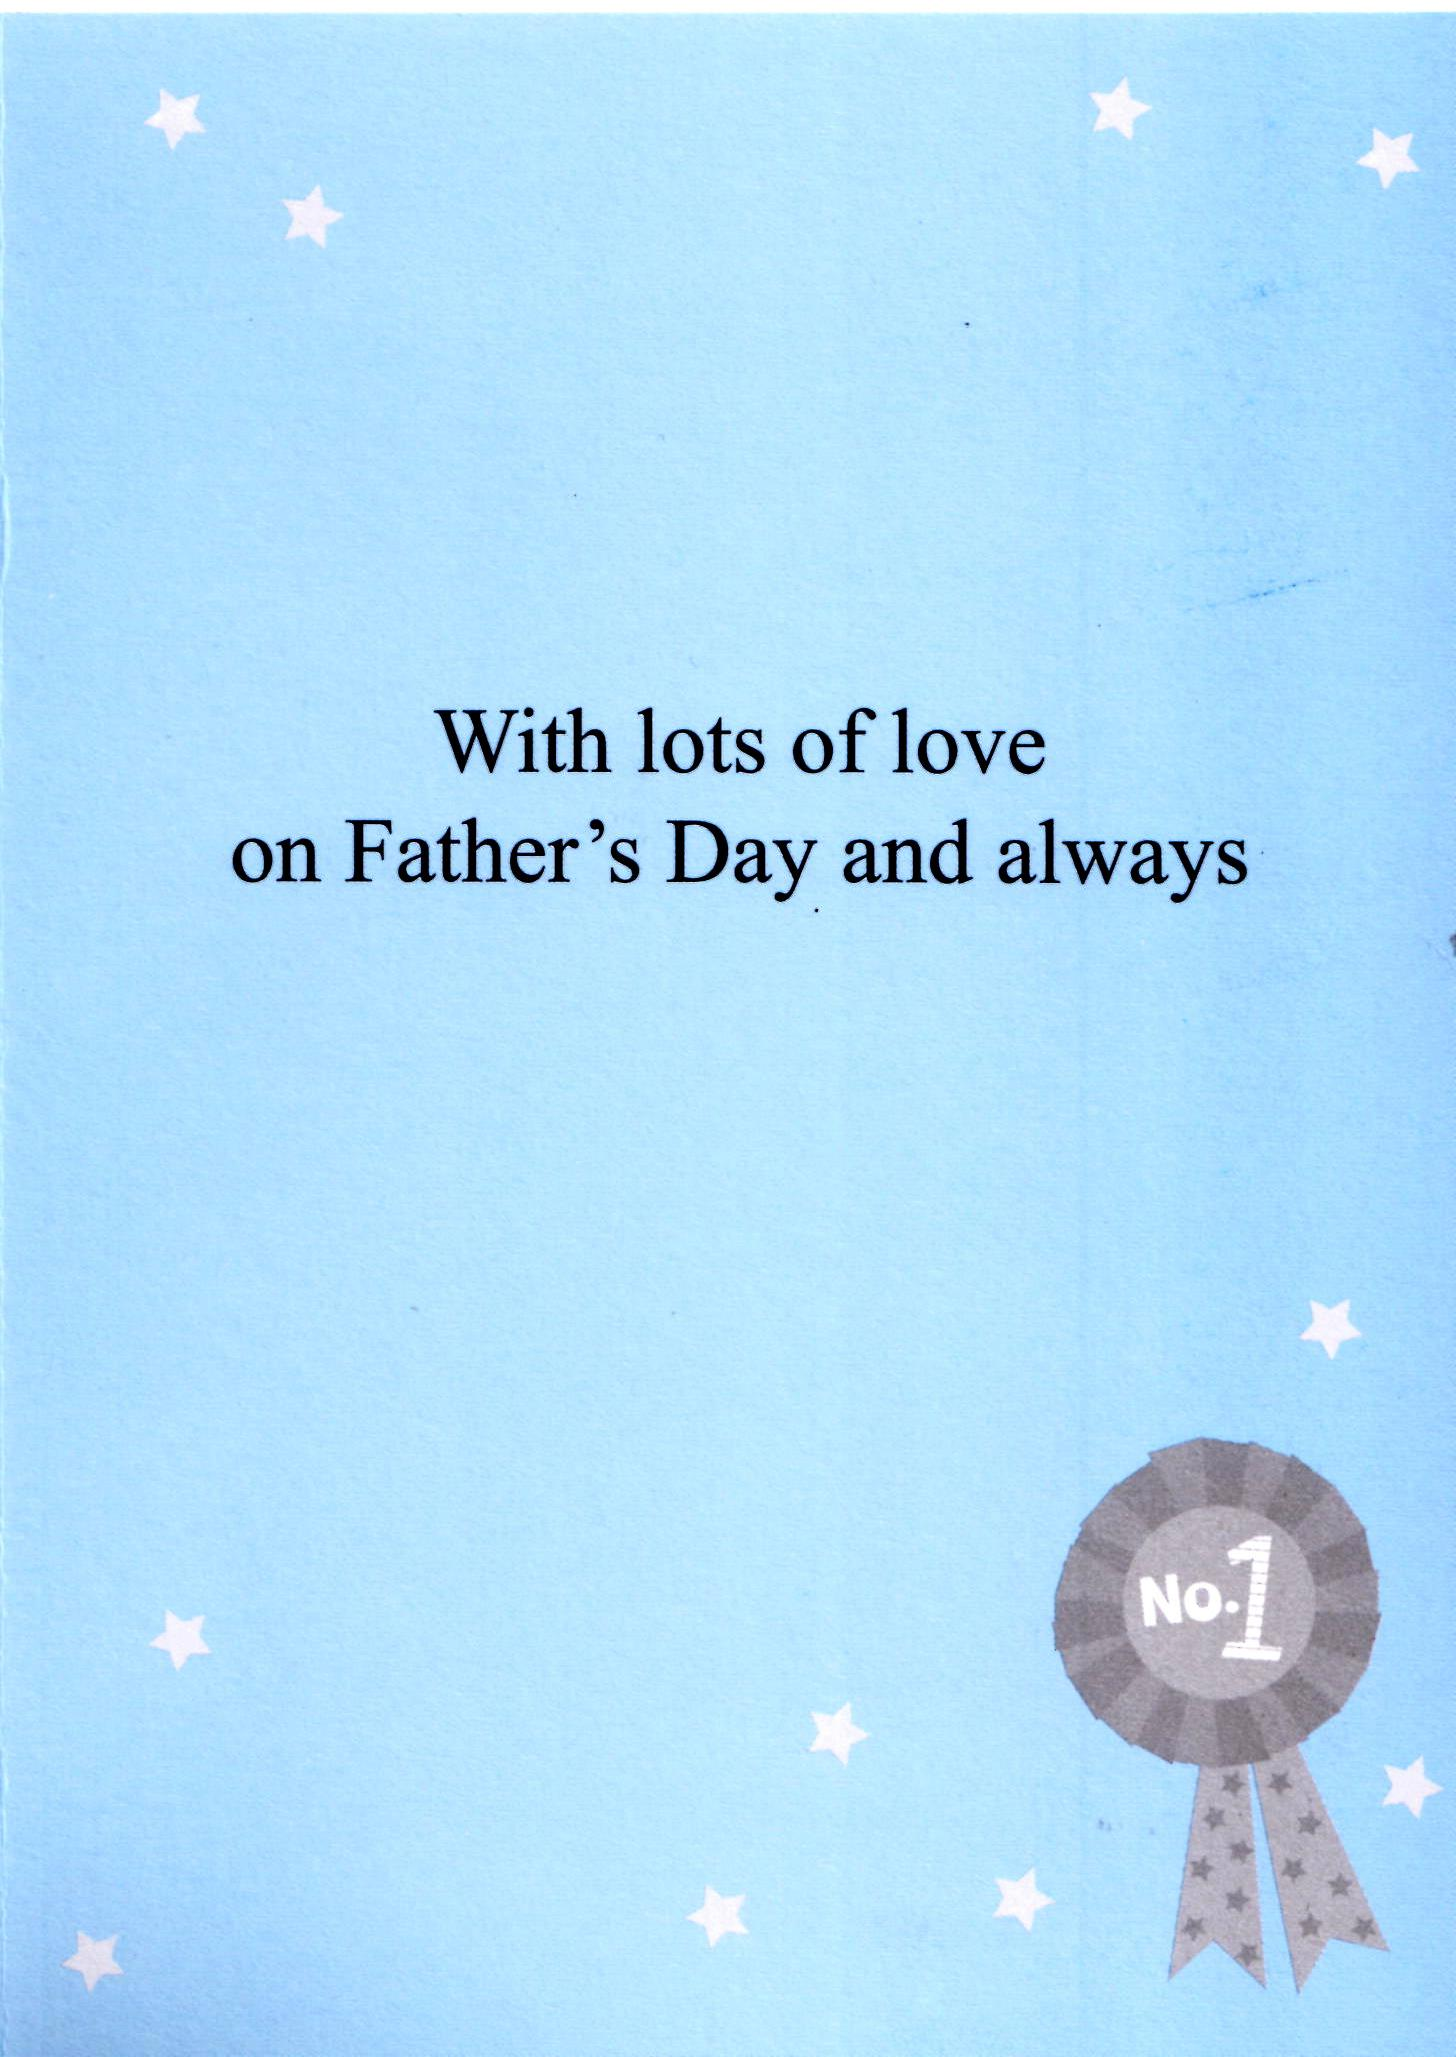 Best Dad In The World Fathers Day Card Quality Greeting Cards No1